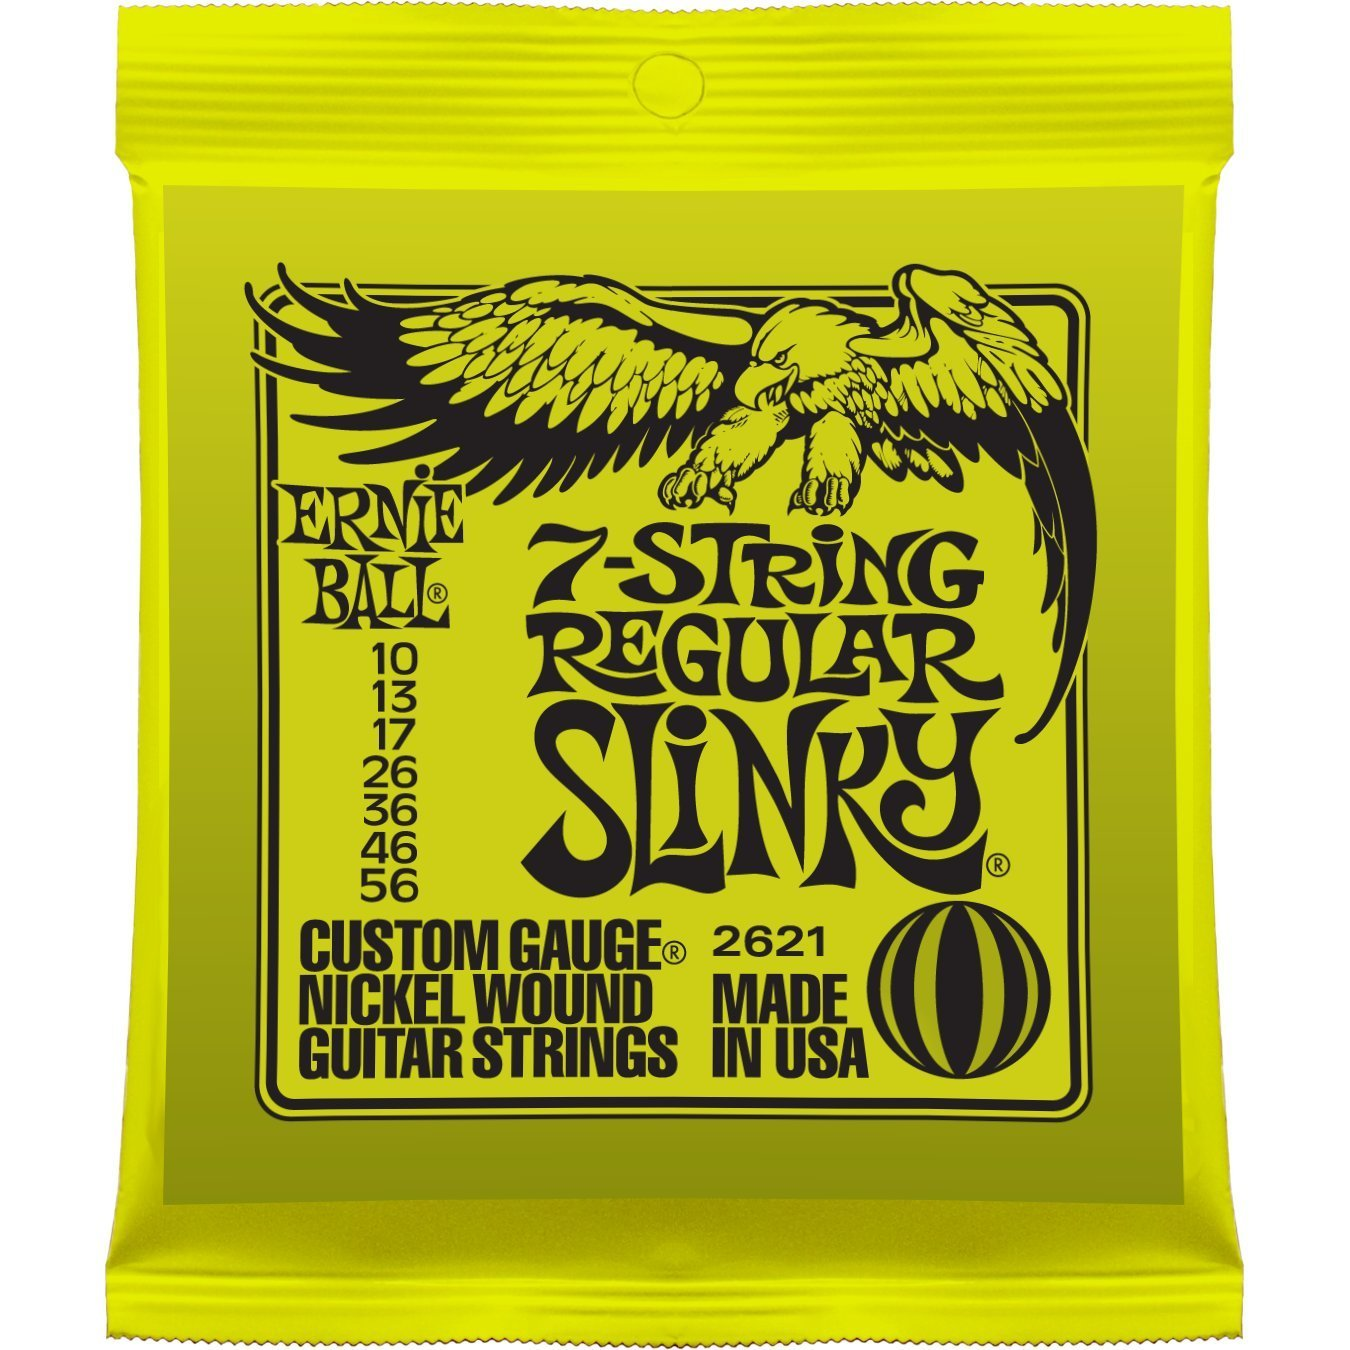 Ernie Ball 2621 Nickel Wound Set, 7-String Regular Slinky .010 - .056